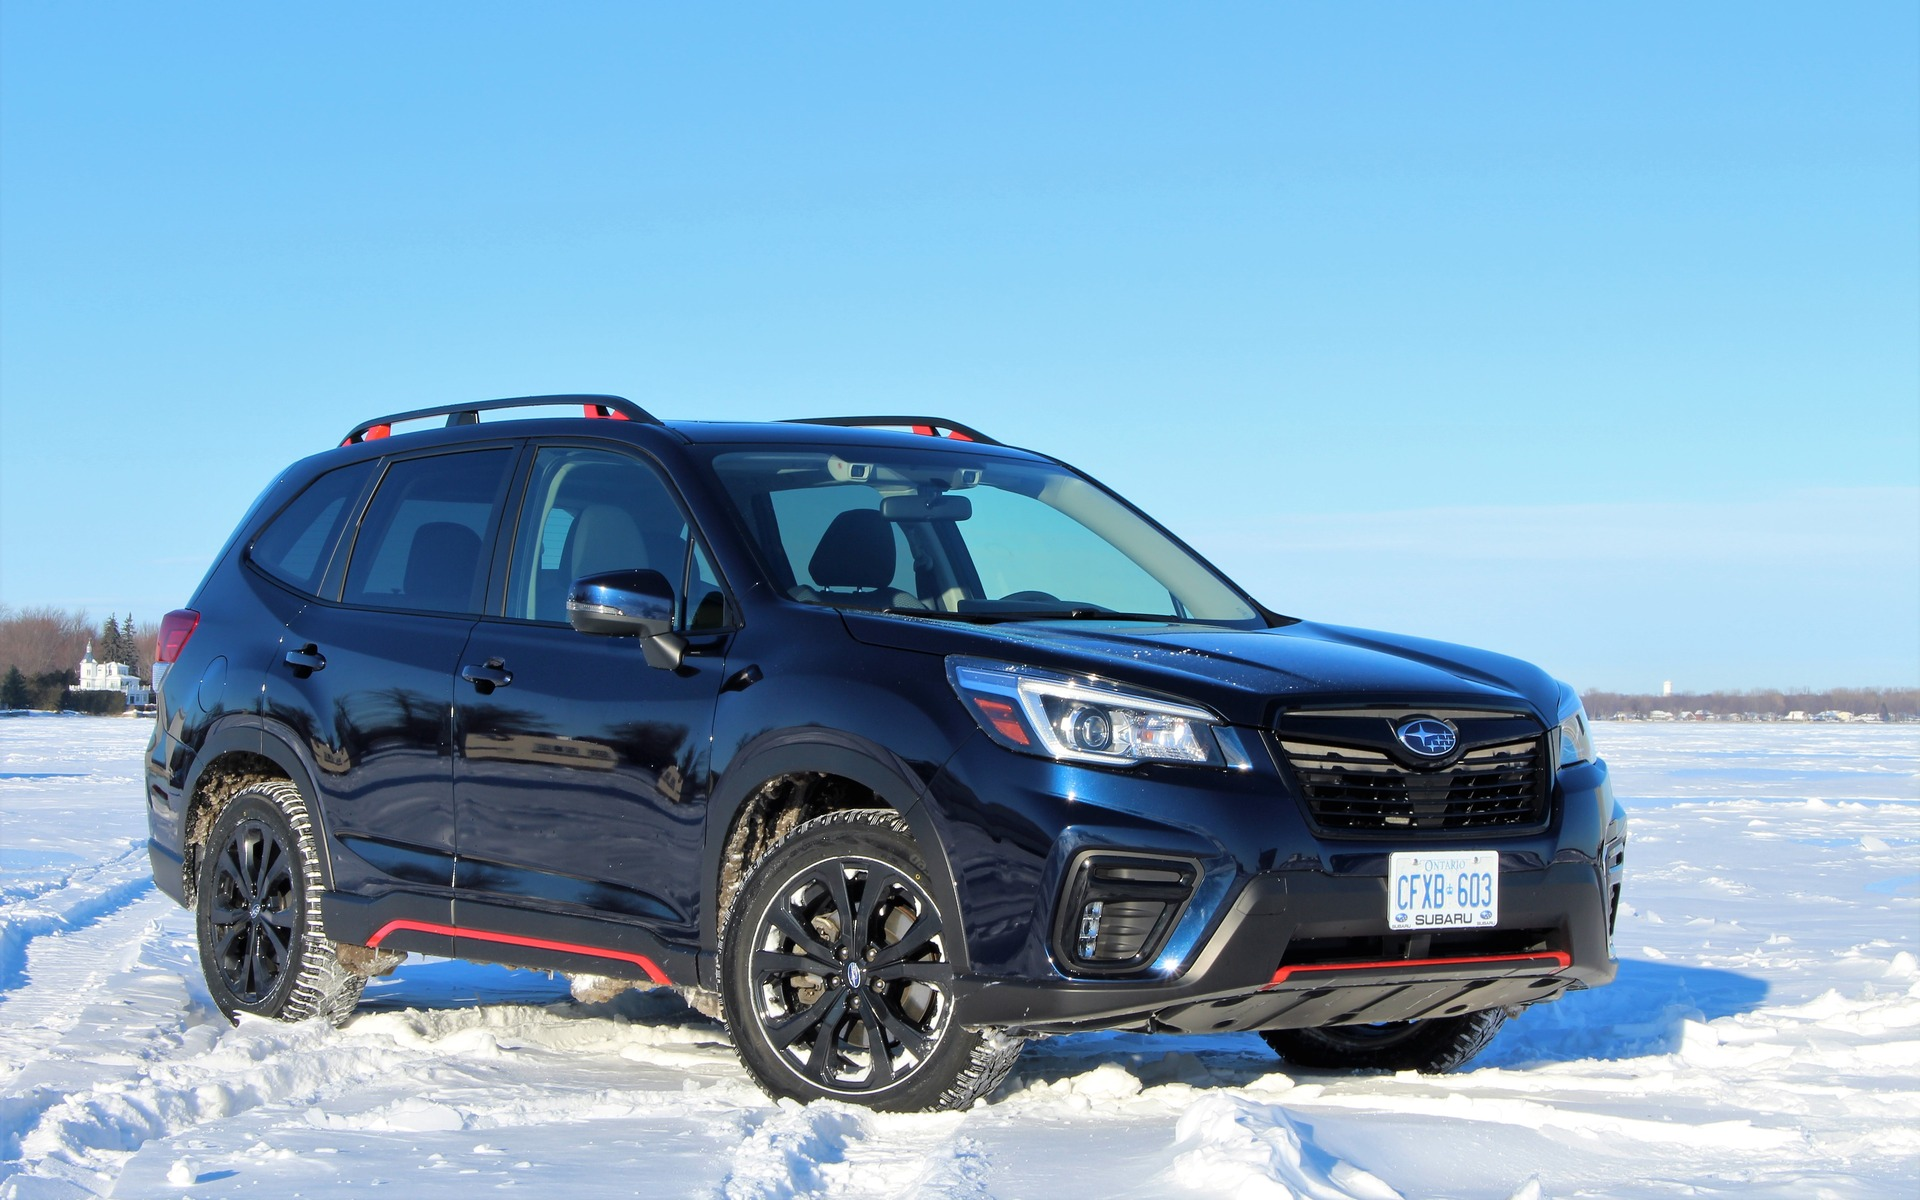 2019 Subaru Forester: Less Quirky, More Practical - The Car